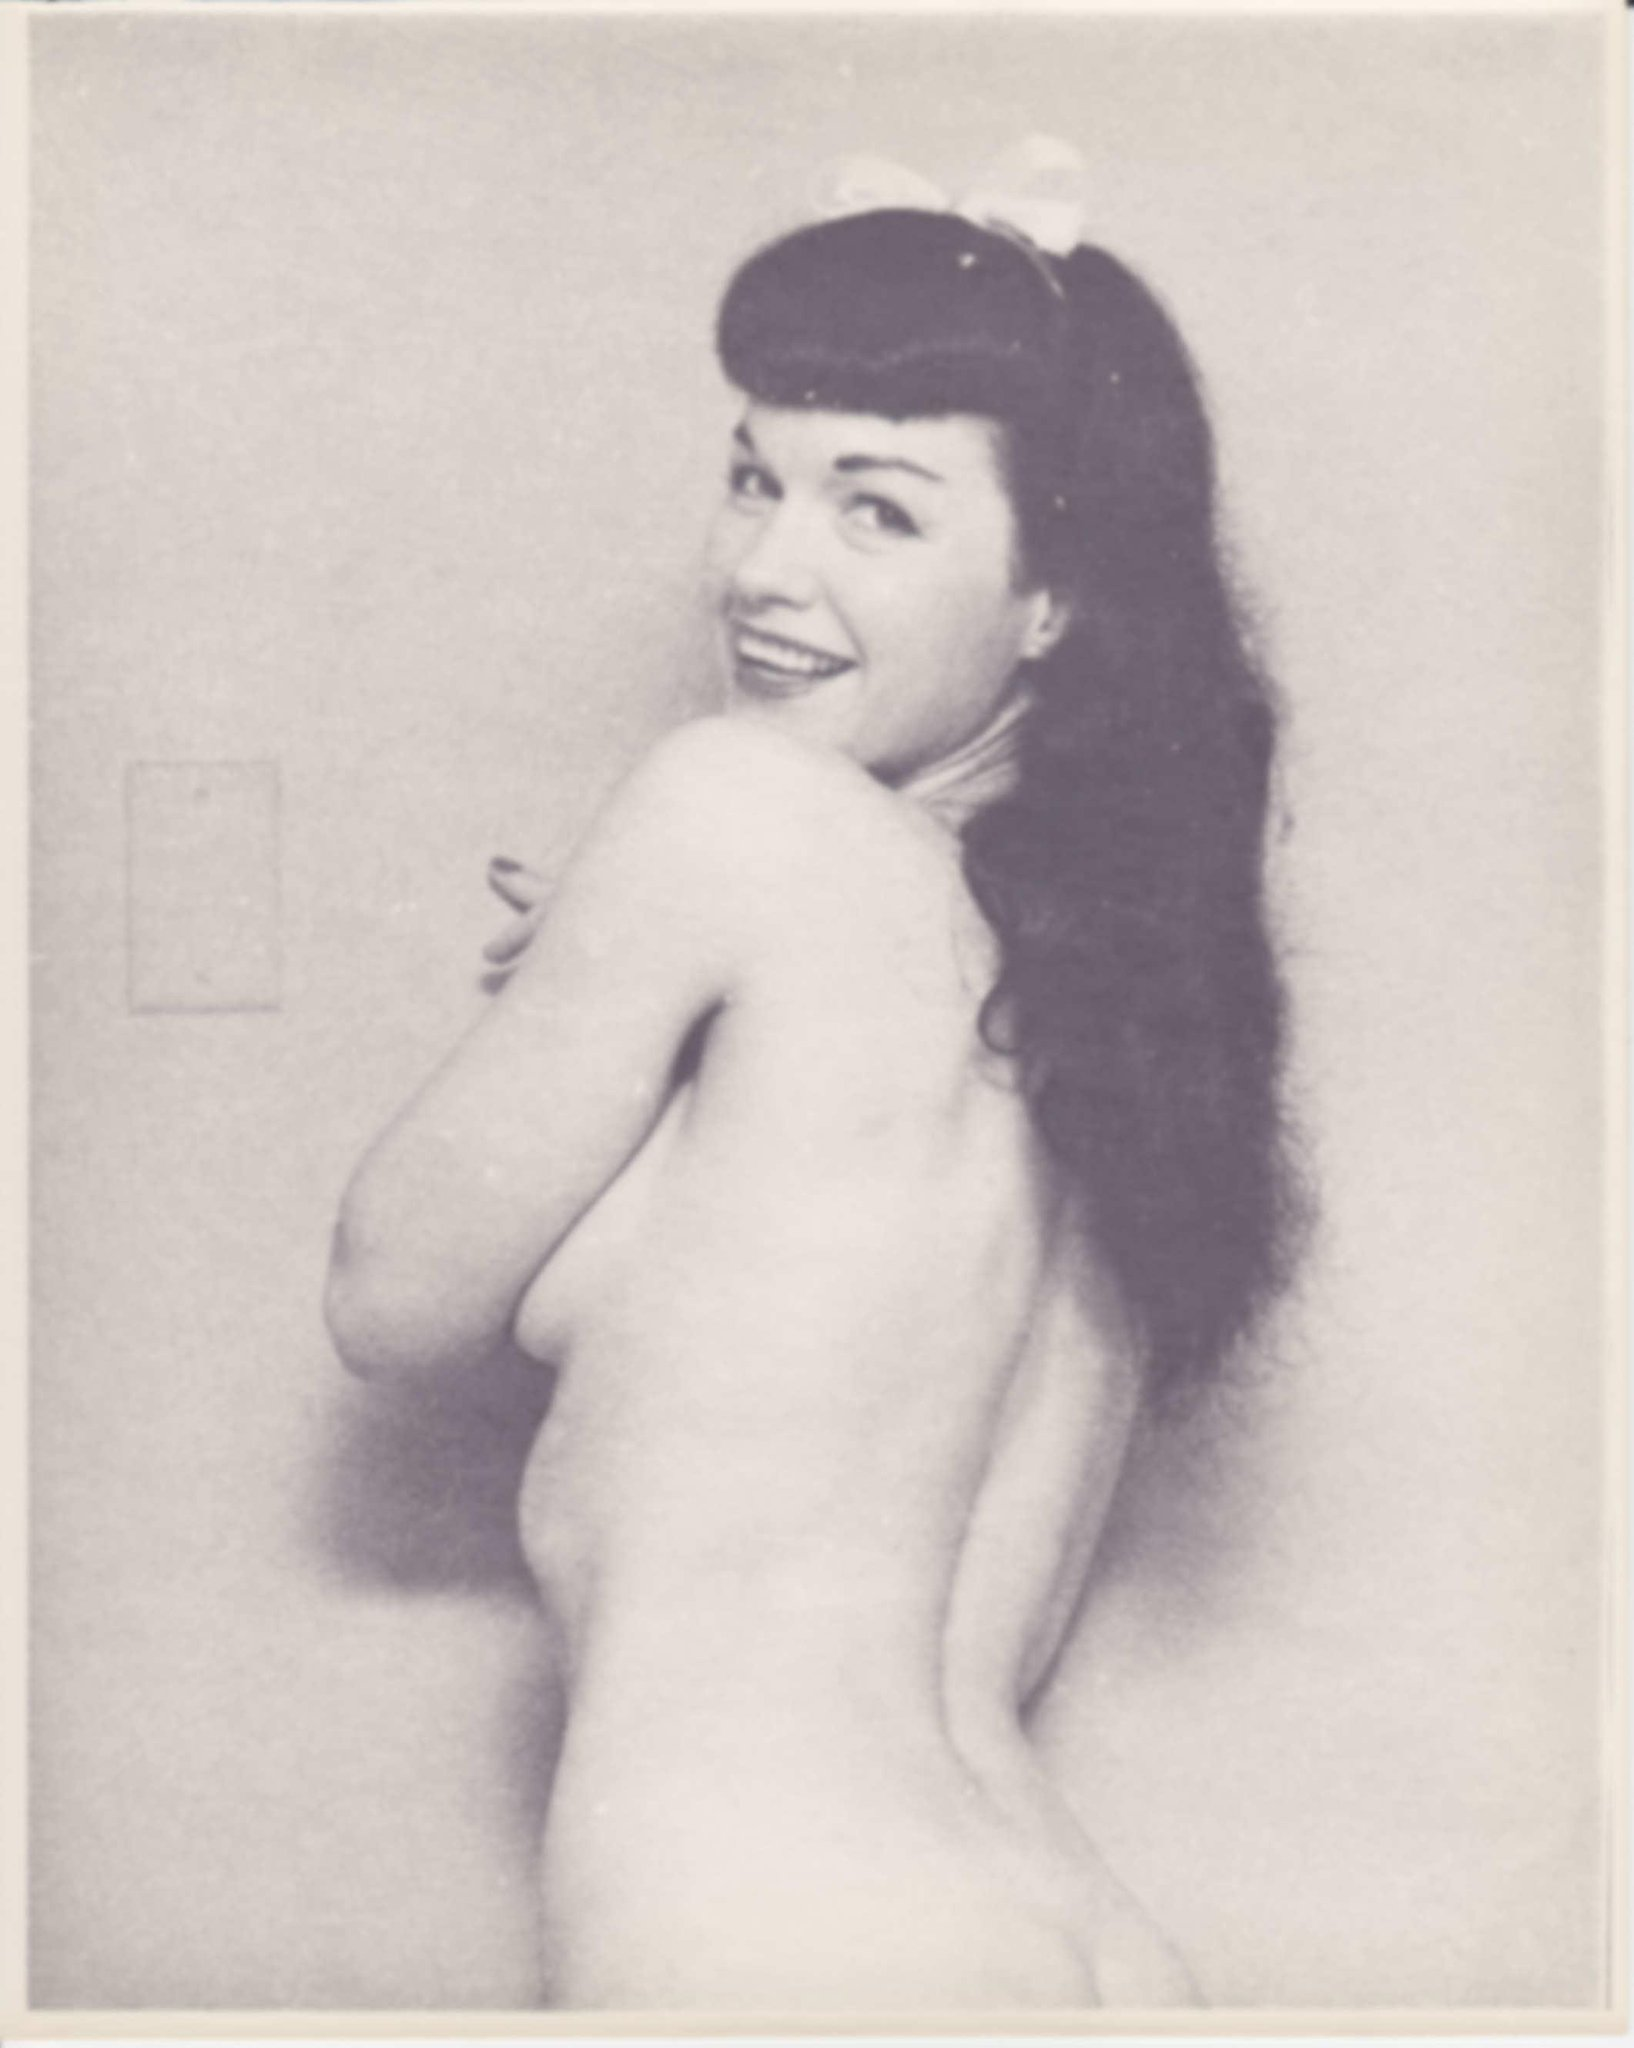 See unpublished nude photos of Bettie Page (NSFW): http://t.co/7XhPriF7CA http://t.co/8LLeFc6Aom